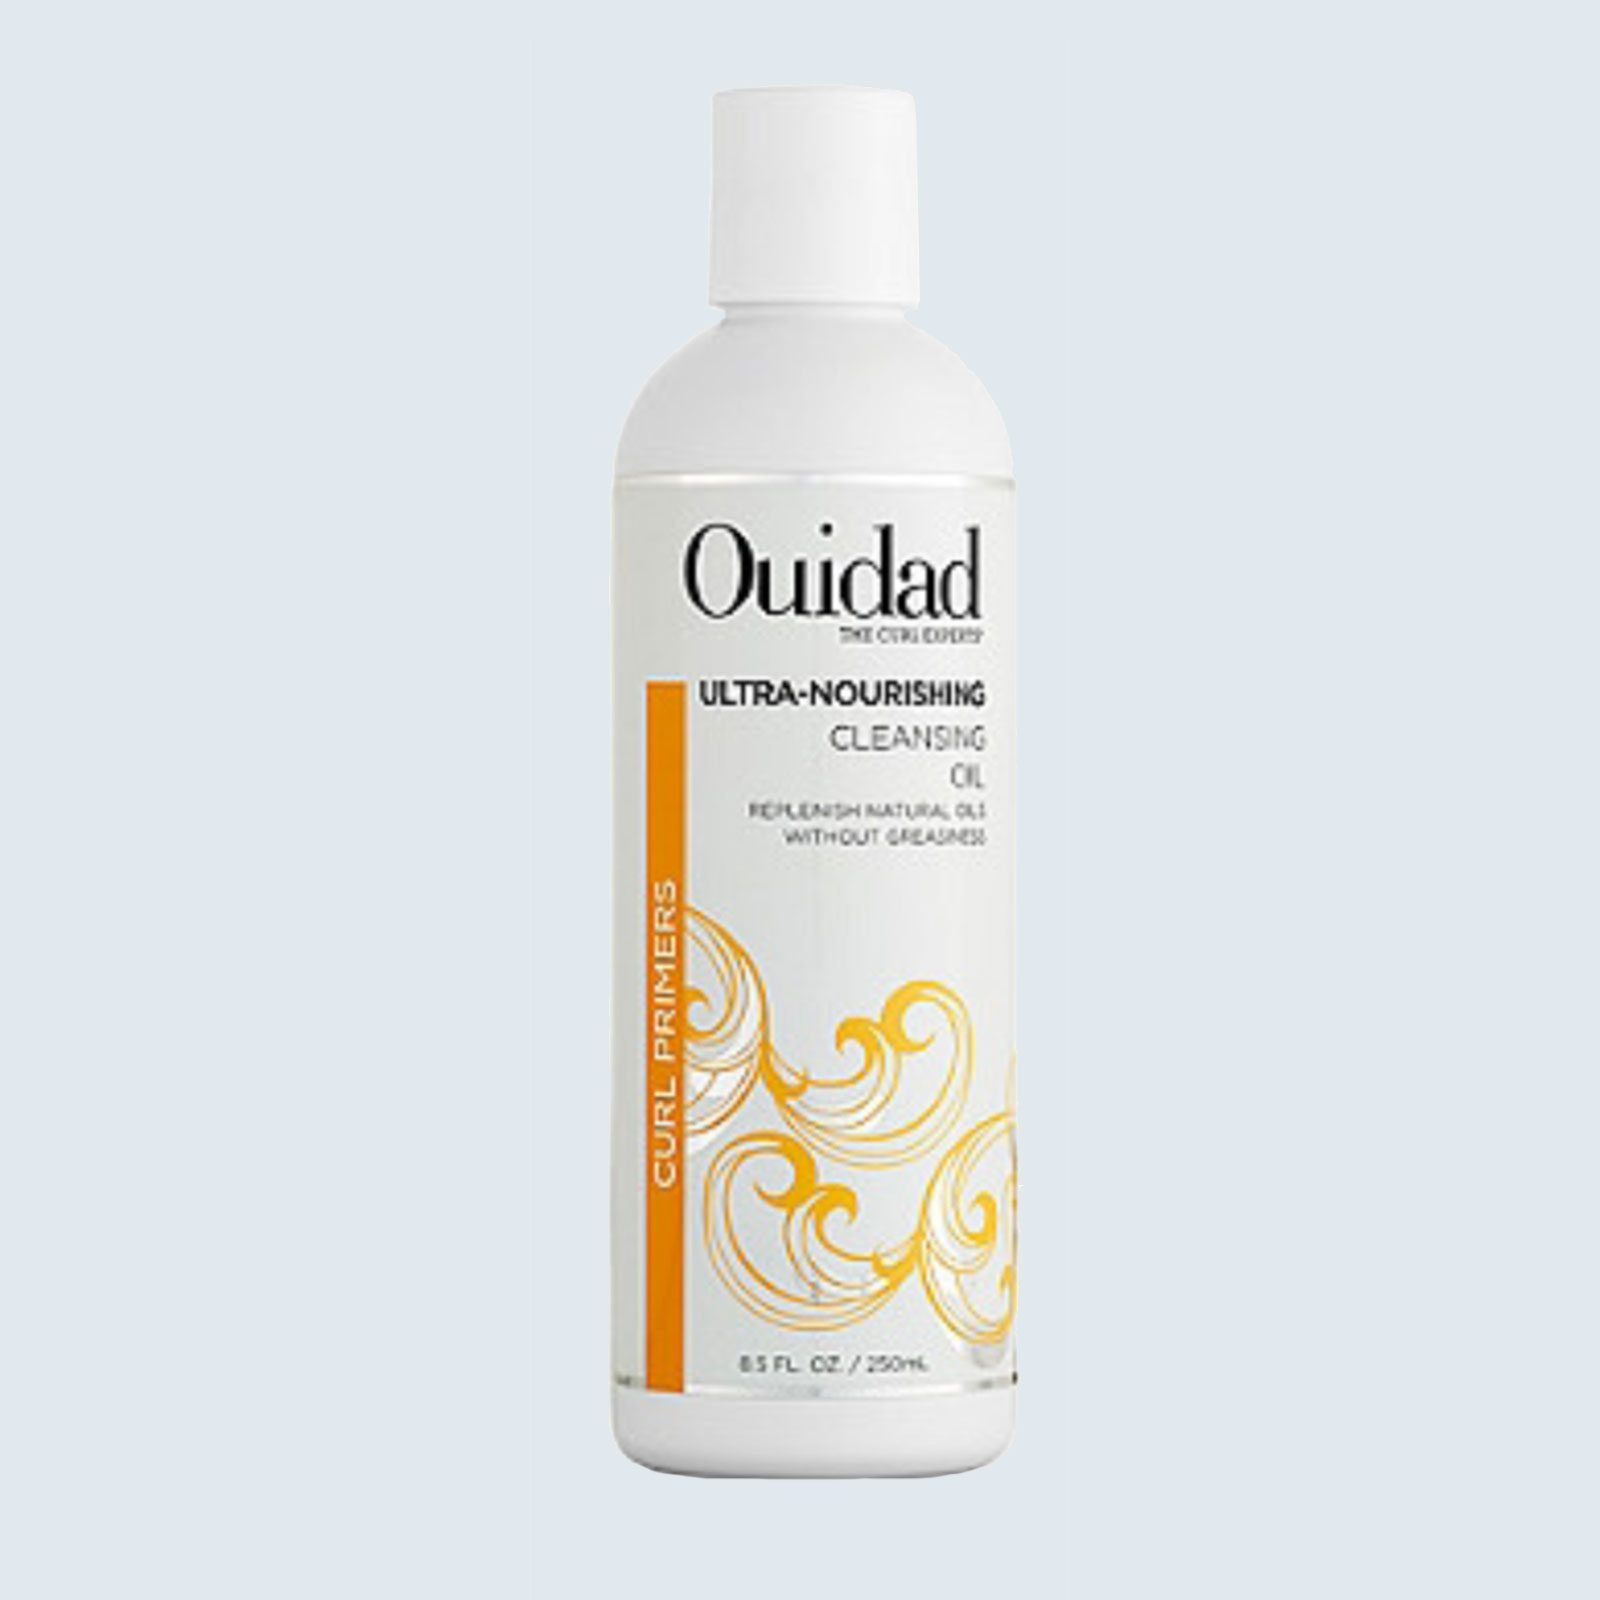 Best shampoo for fragile curls: Ouidad Ultra-Nourishing Cleansing Oil